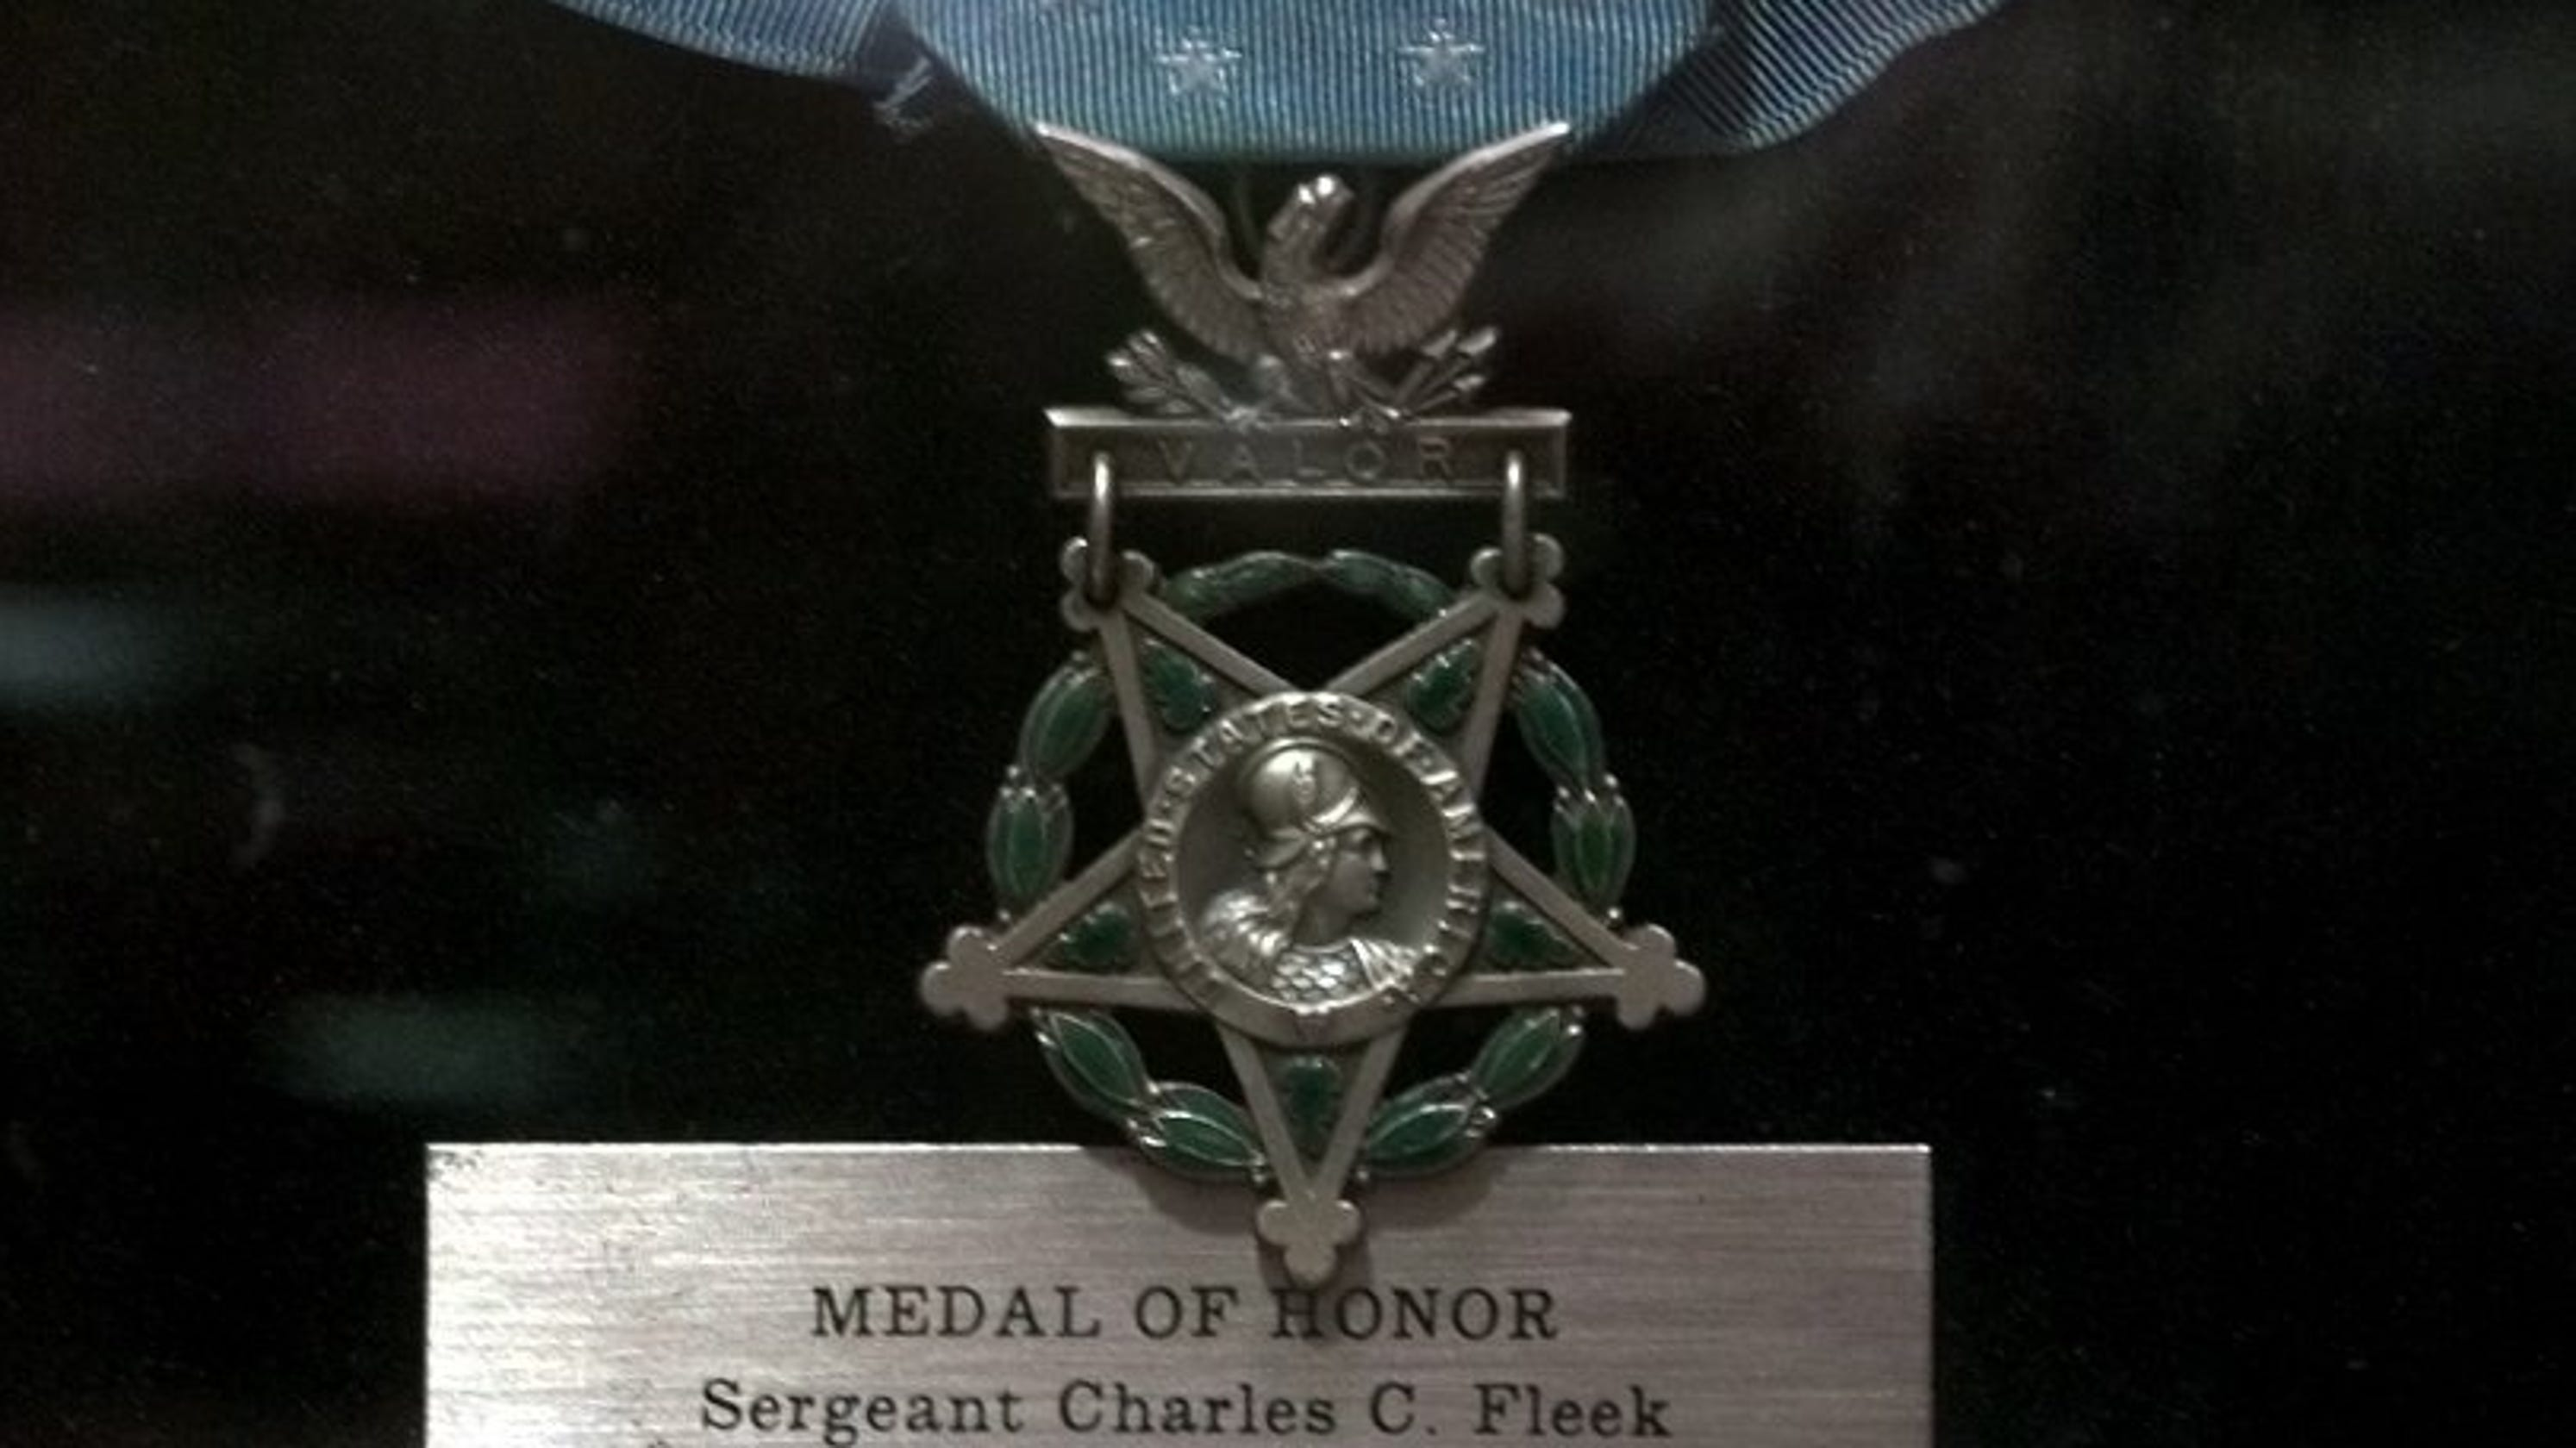 Medal of Honor: A history of the highest military award for